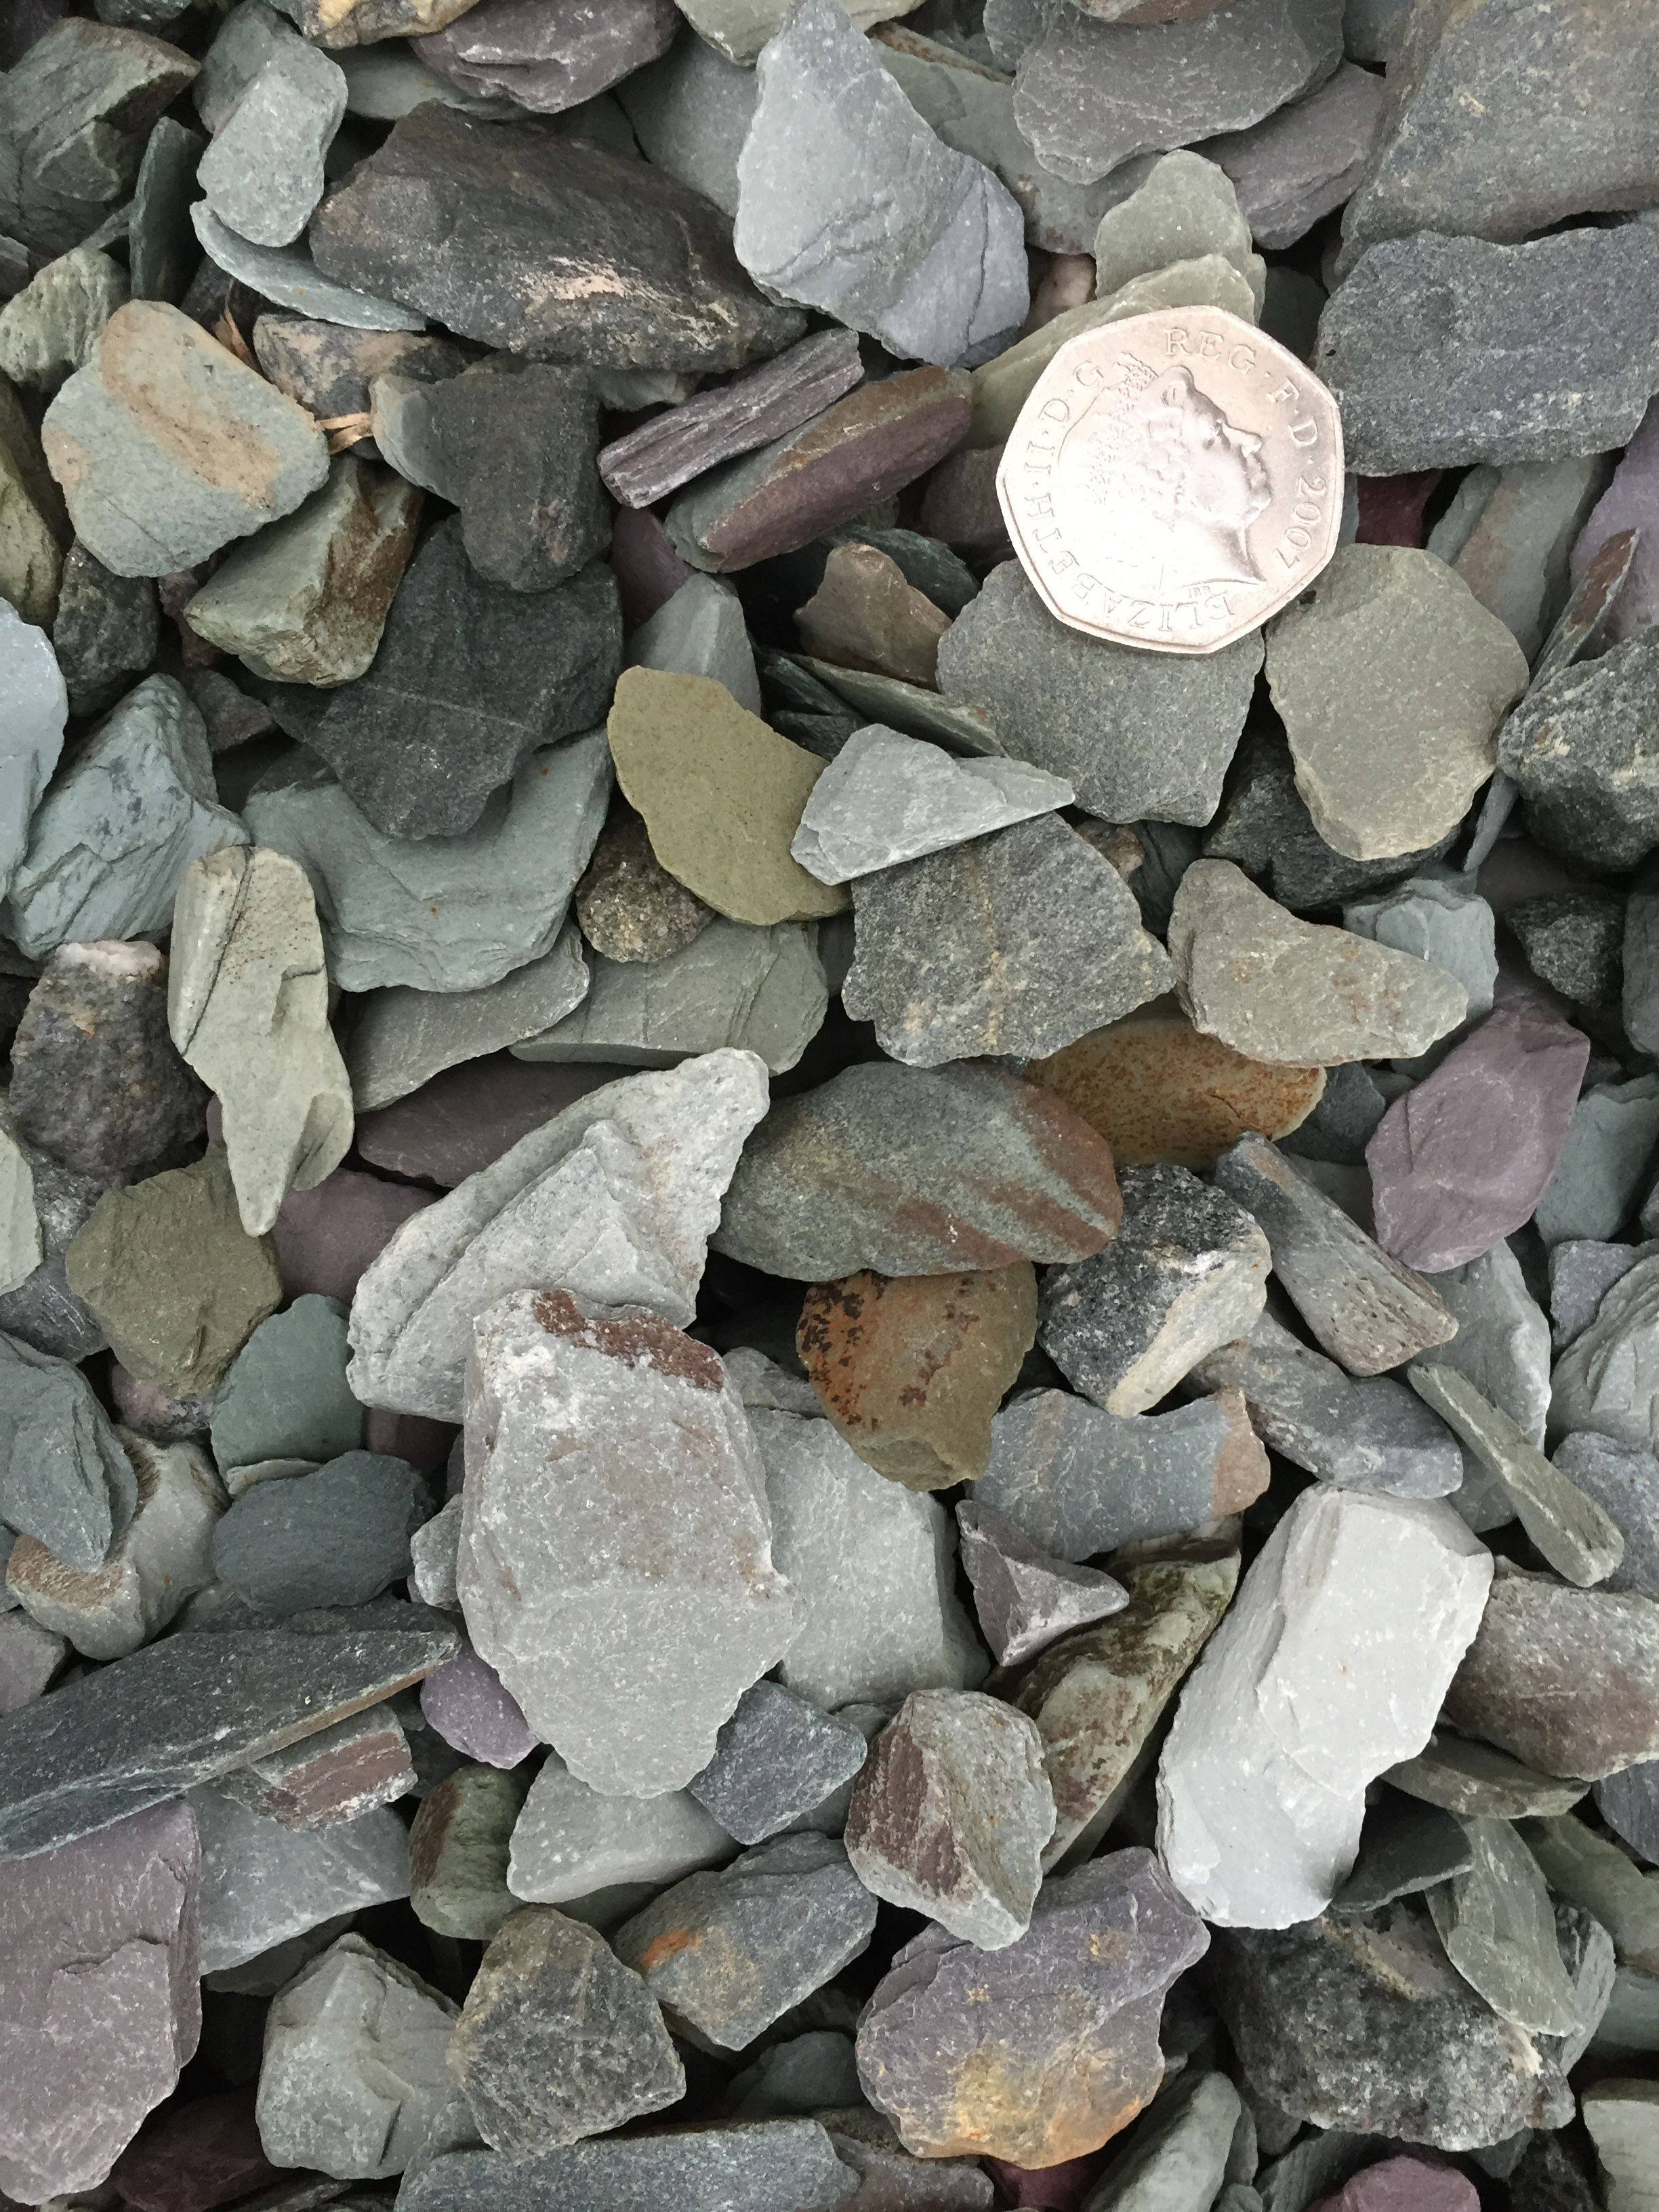 20mm Green Slate Chippings As Seen Dry With Scale Provided Decorative Gravel Pictures Green